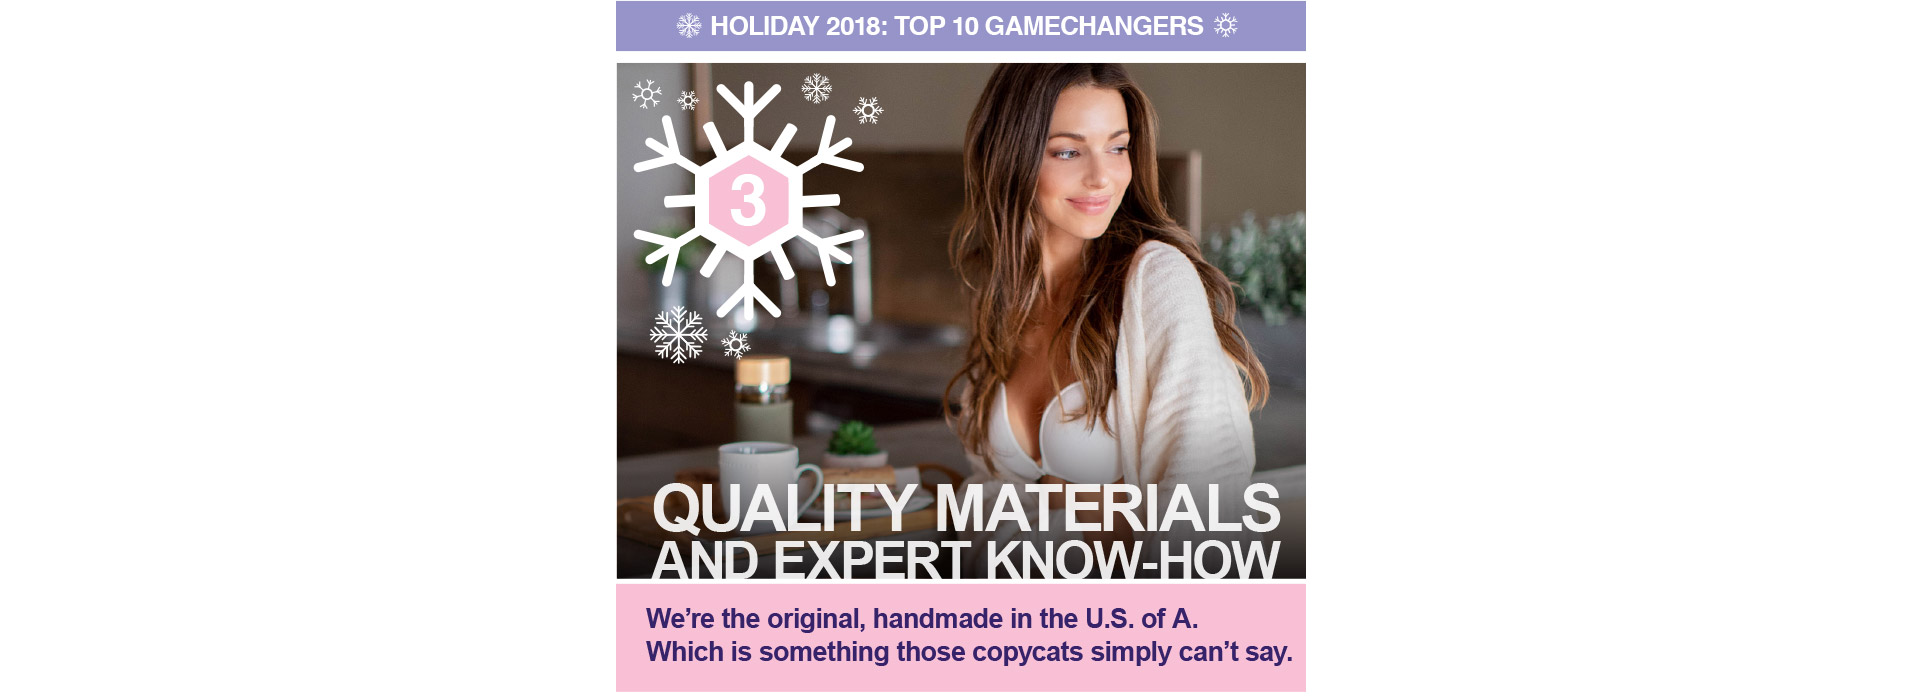 TOP 10GAMECHANGERSFOR HOLIDAY 2018 Quality Materials and expert know-how.